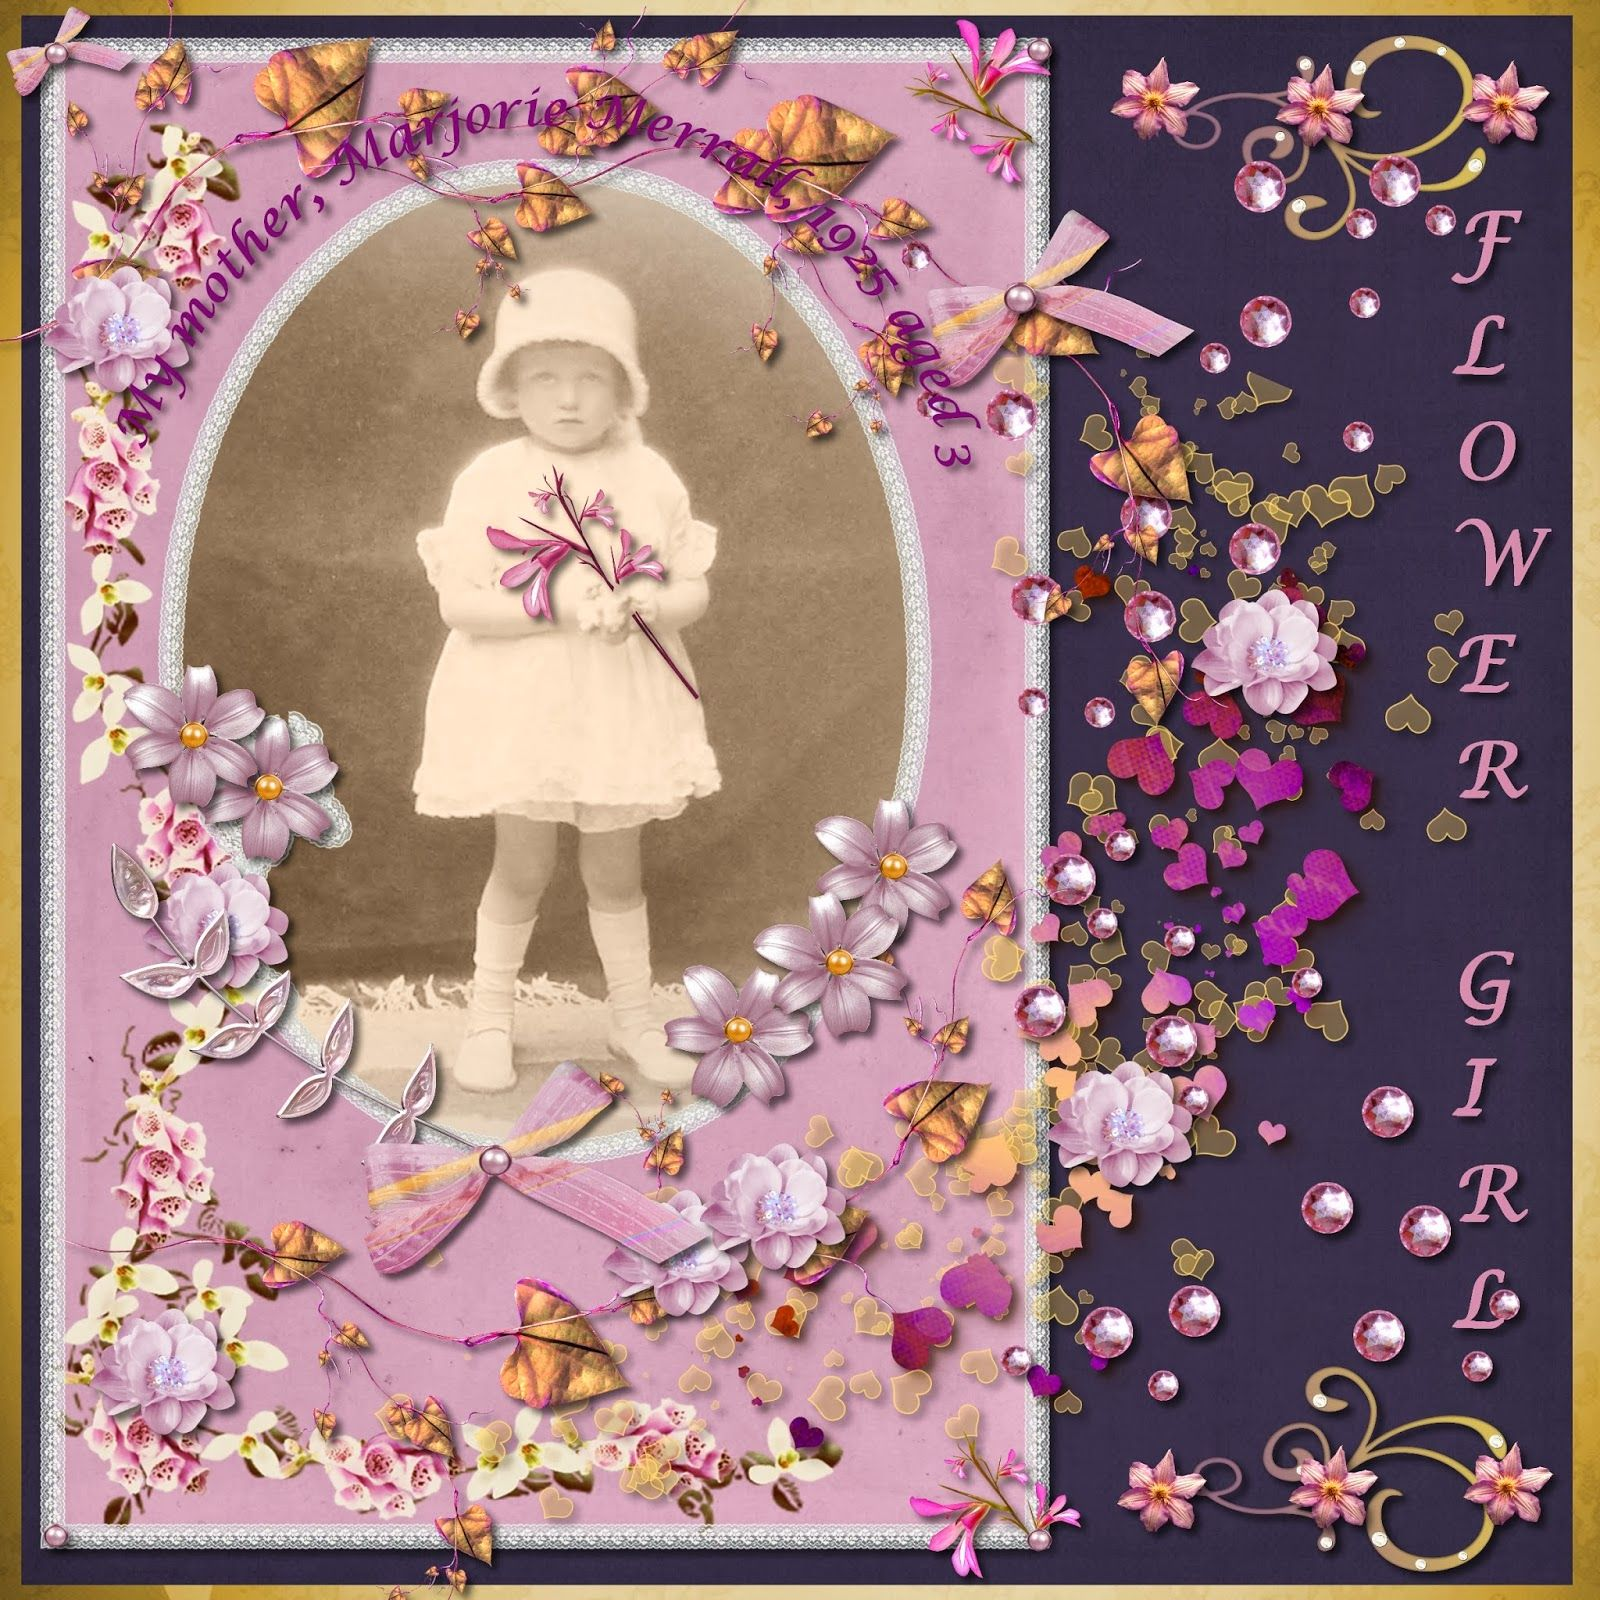 Flower Girl. Digital scrapbook layout by Melissa Lawrence. Created using A Mother's Love digikit from Kreative Designs by Karen.